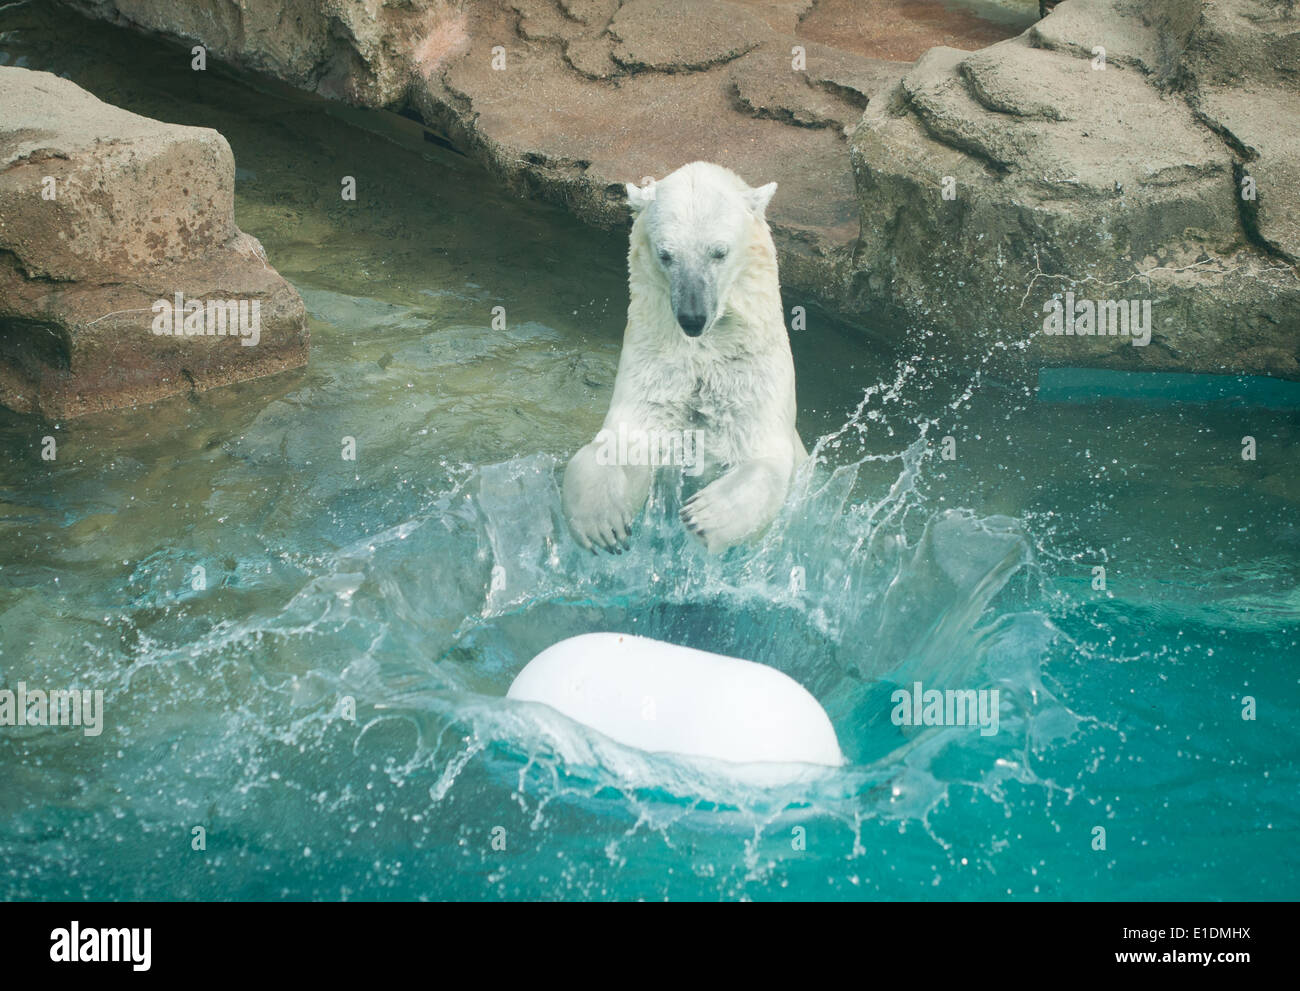 Anana, the resident Polar bear (Ursus maritimus) of Lincoln Park Zoo in Chicago, Illinois, plays in the water on a summer's day. - Stock Image